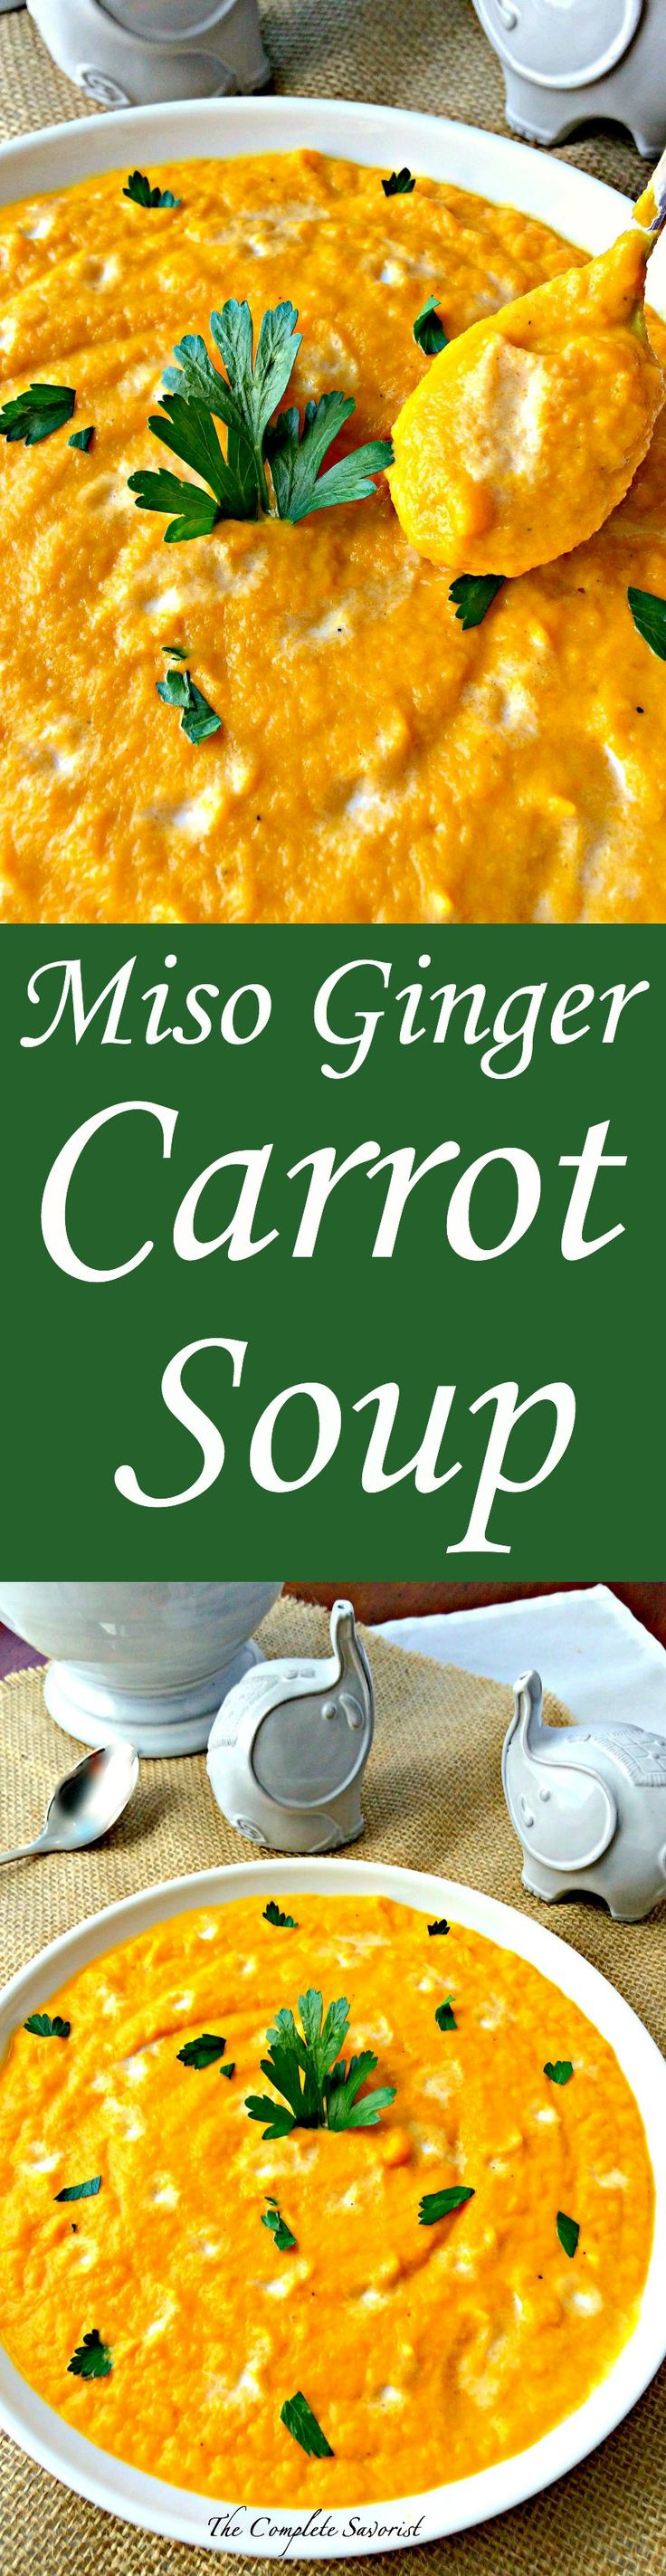 Miso Ginger Carrot Soup | Recipe | The o'jays, Blog and ...